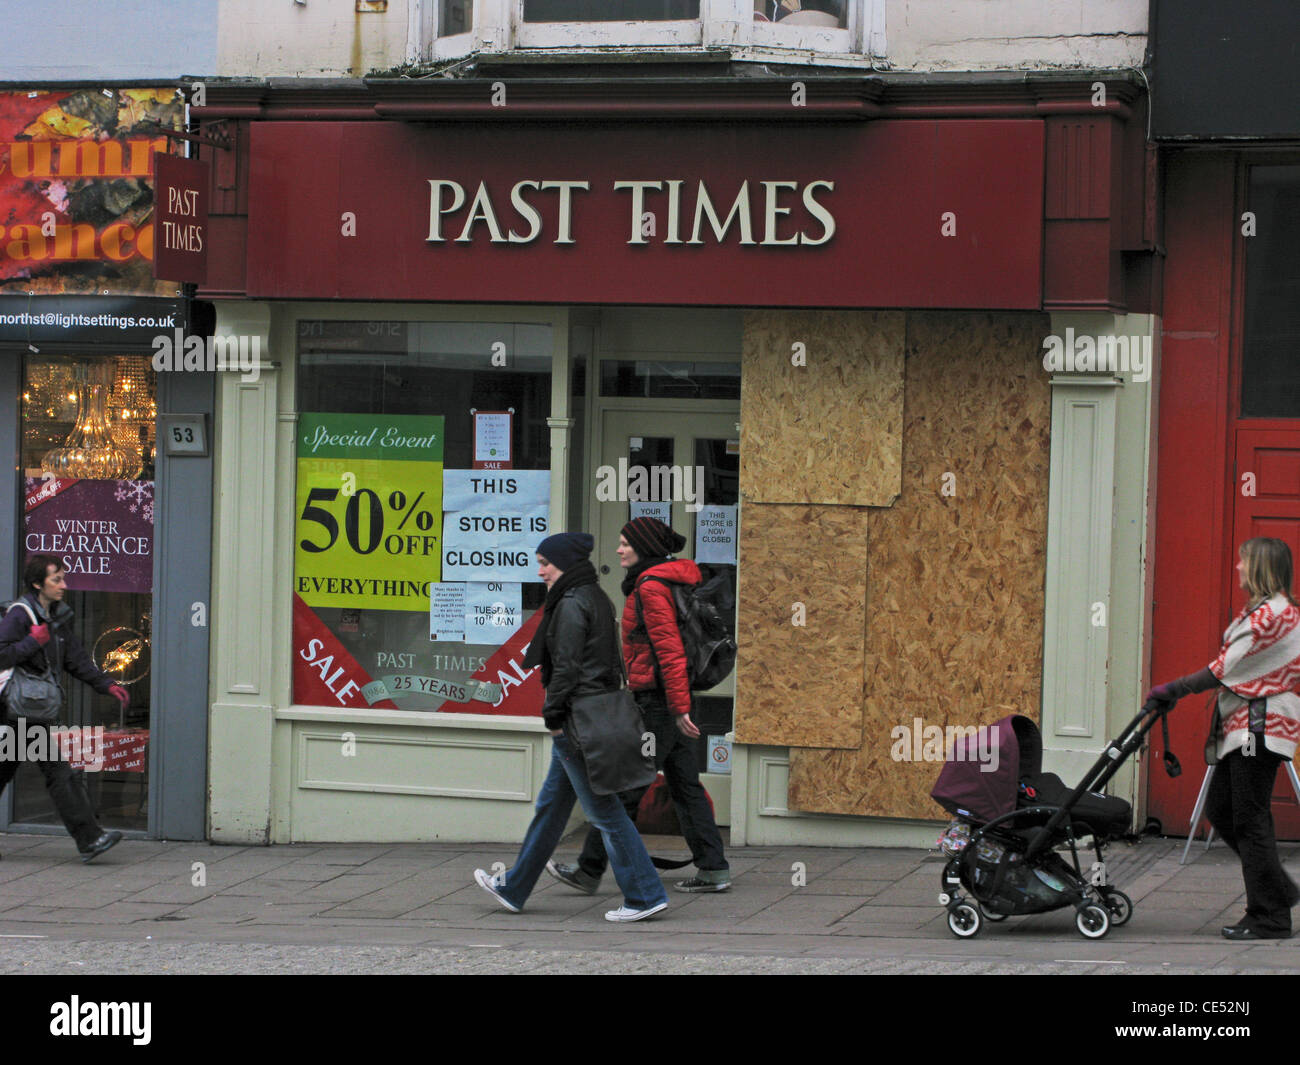 Past Times shop boarded up & closed due to going into administration - Stock Image